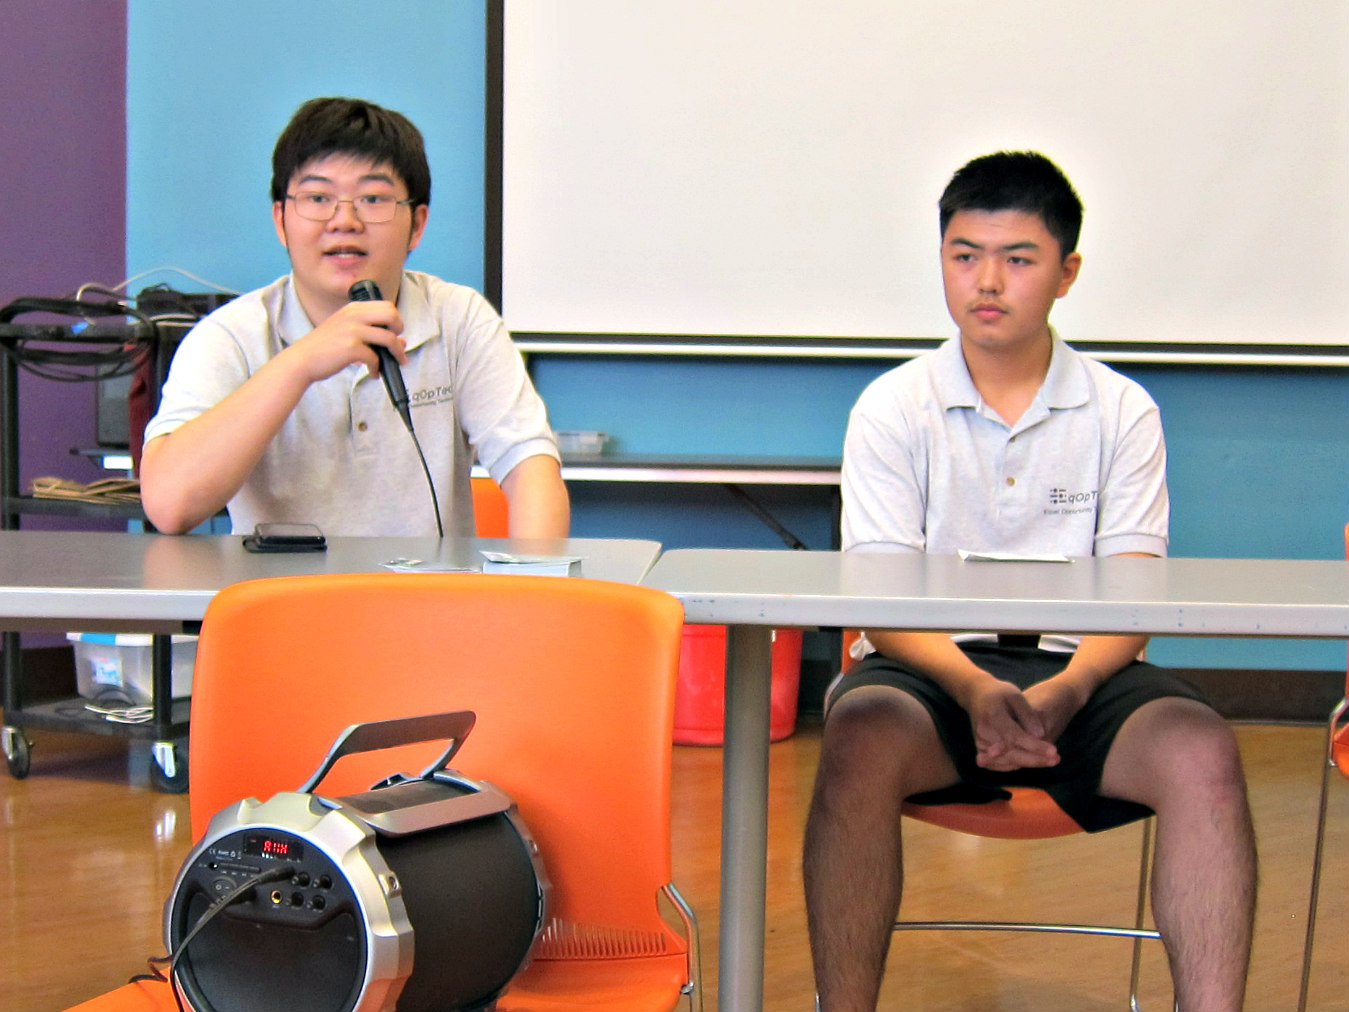 Student Q&A panel, Kevin Gao (right) & Terence Lee